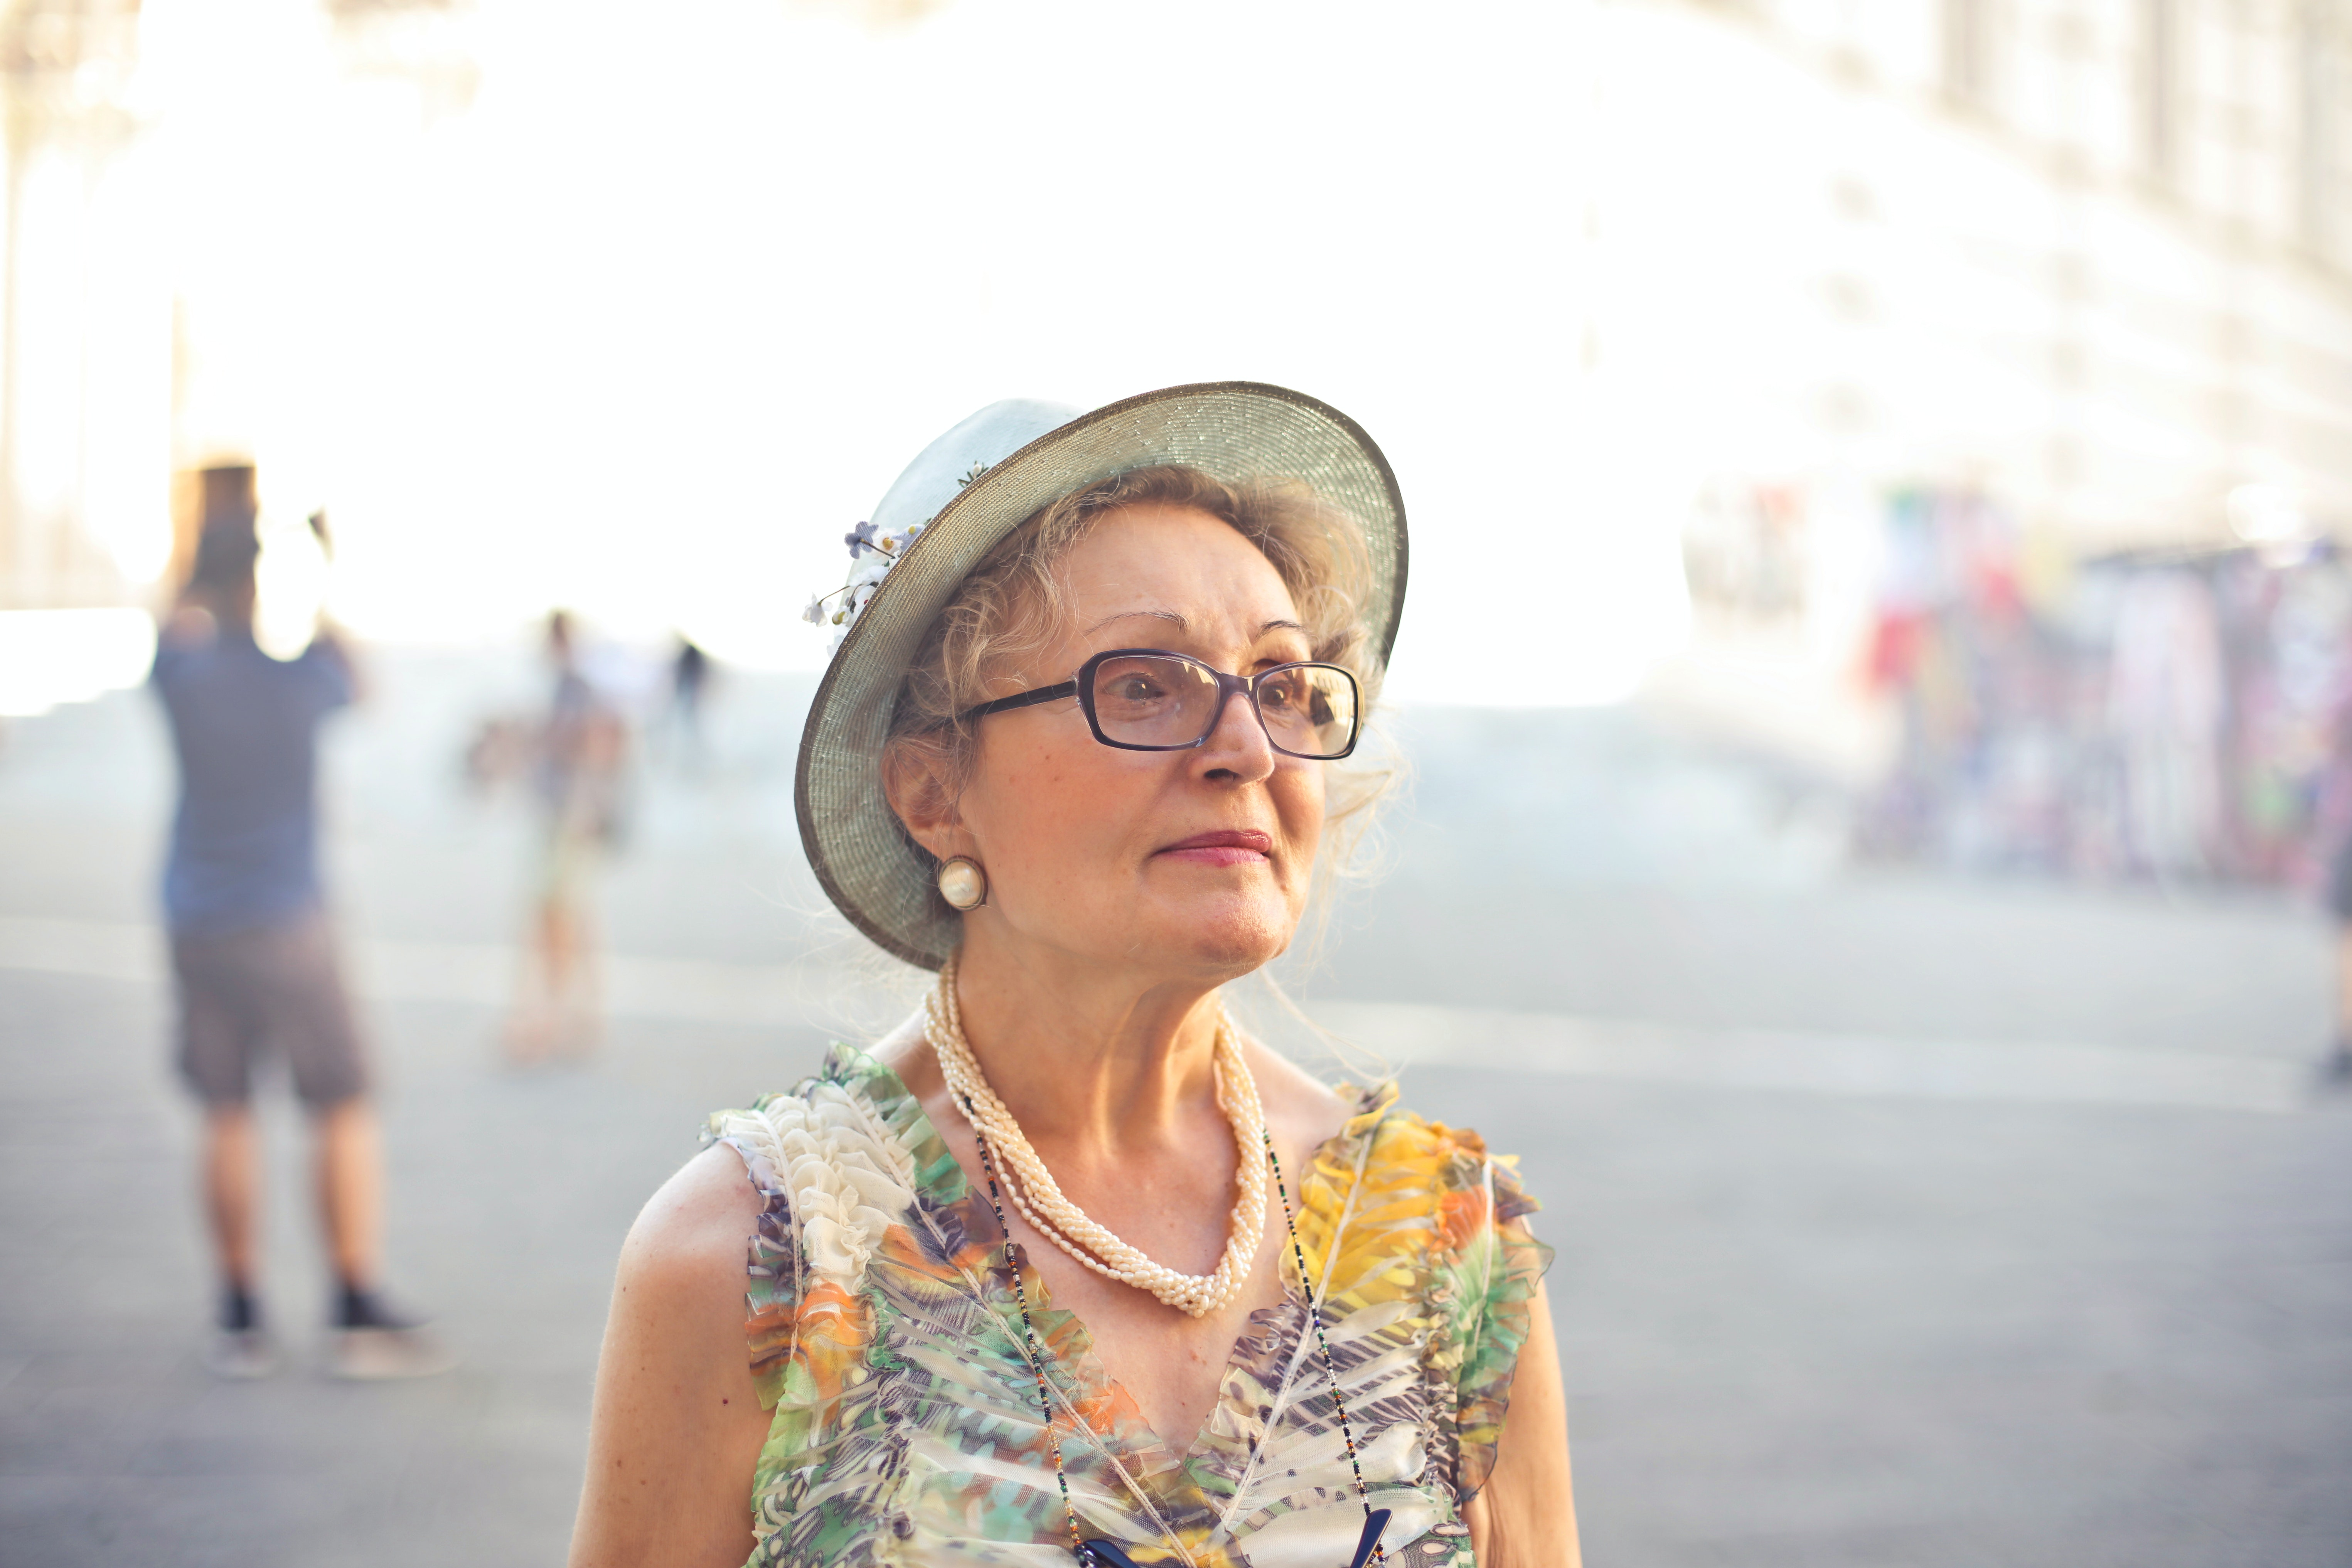 Woman in pastel color sleeveless shirt and sunhat. | Photo: Pexels